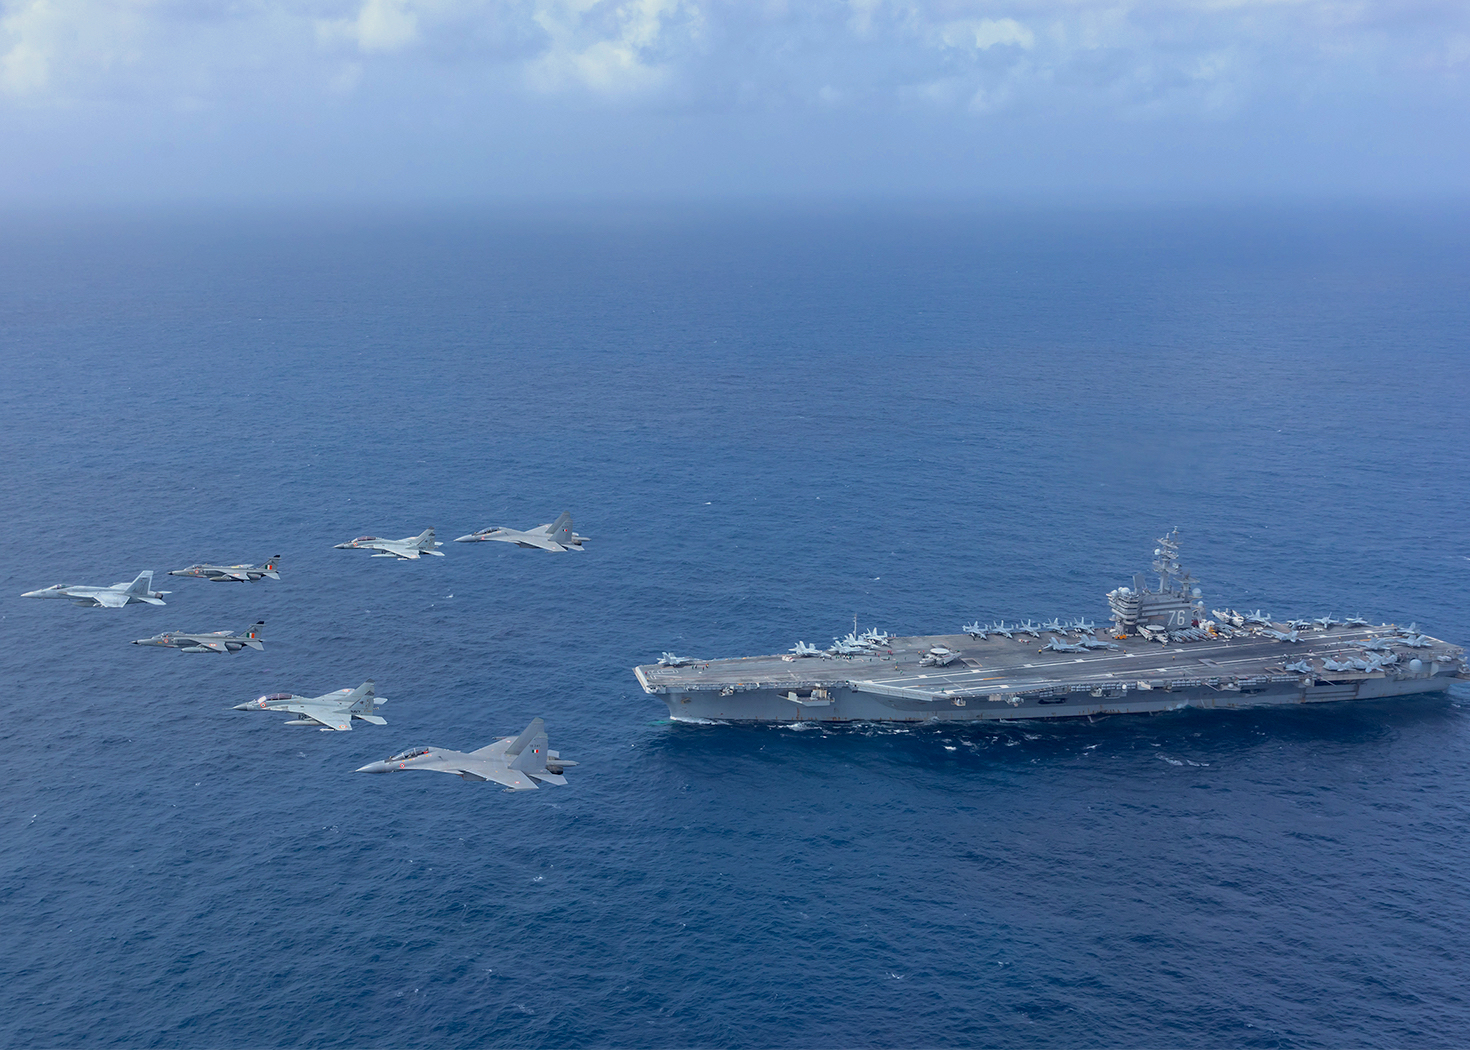 India, U.S. Navies Hold Complex Air and Sea Drills in the Indian Ocean, Kicking Off Several Summer Exercises - USNI News